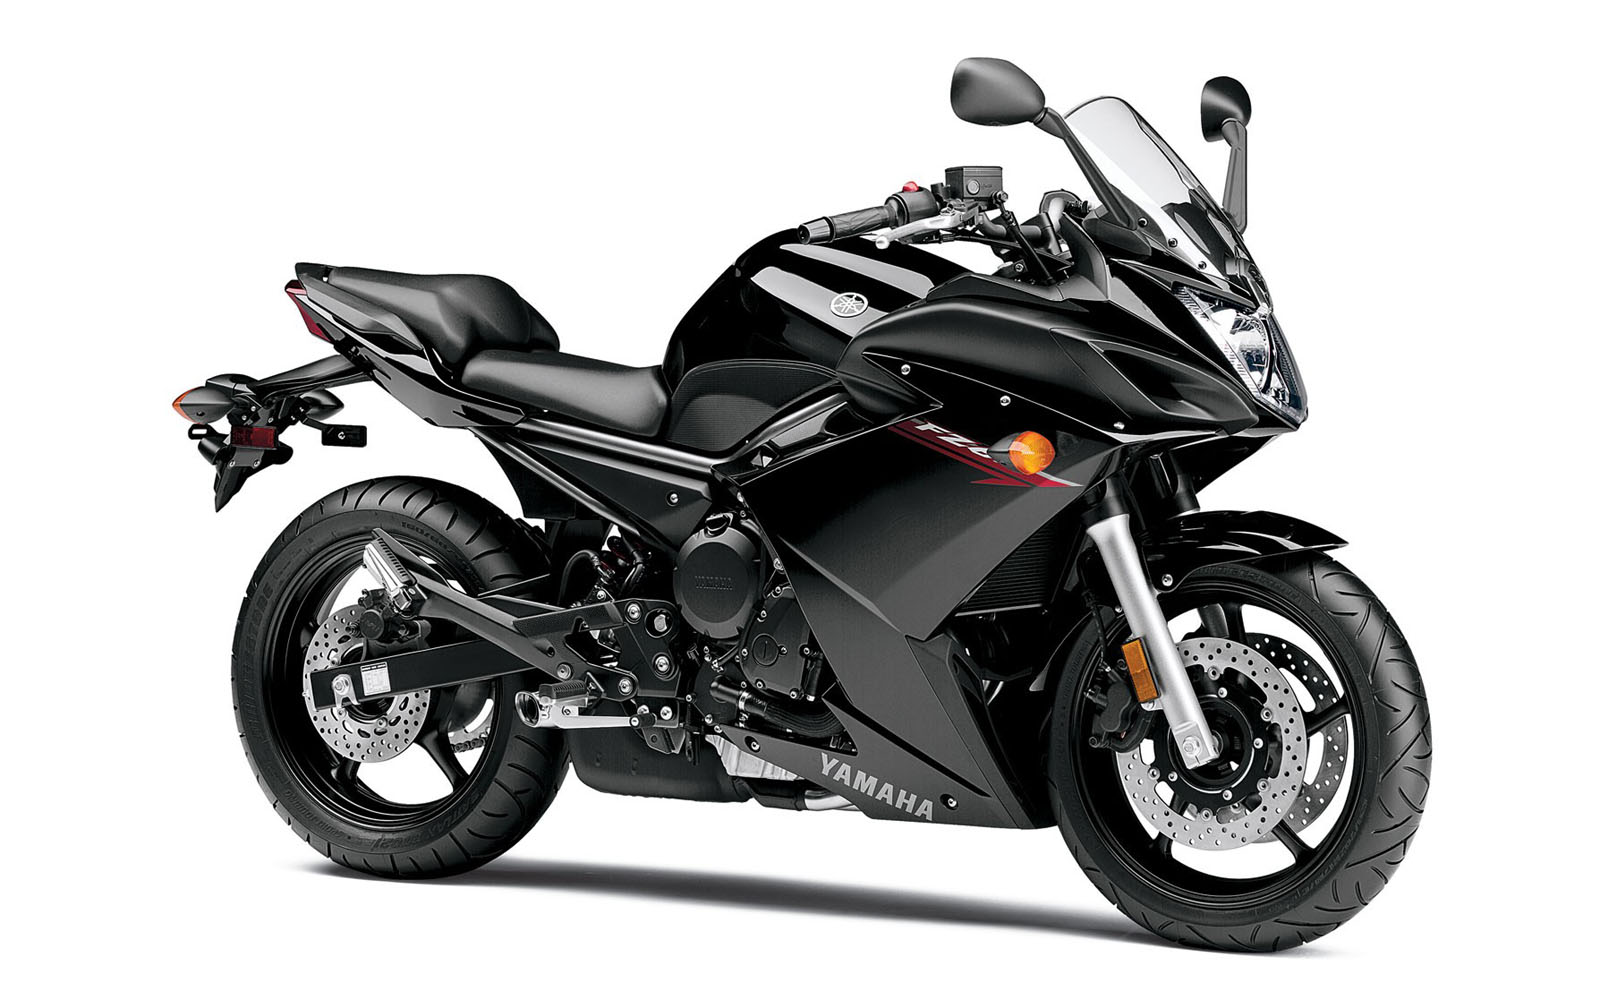 Yamaha fz6r photo - 7